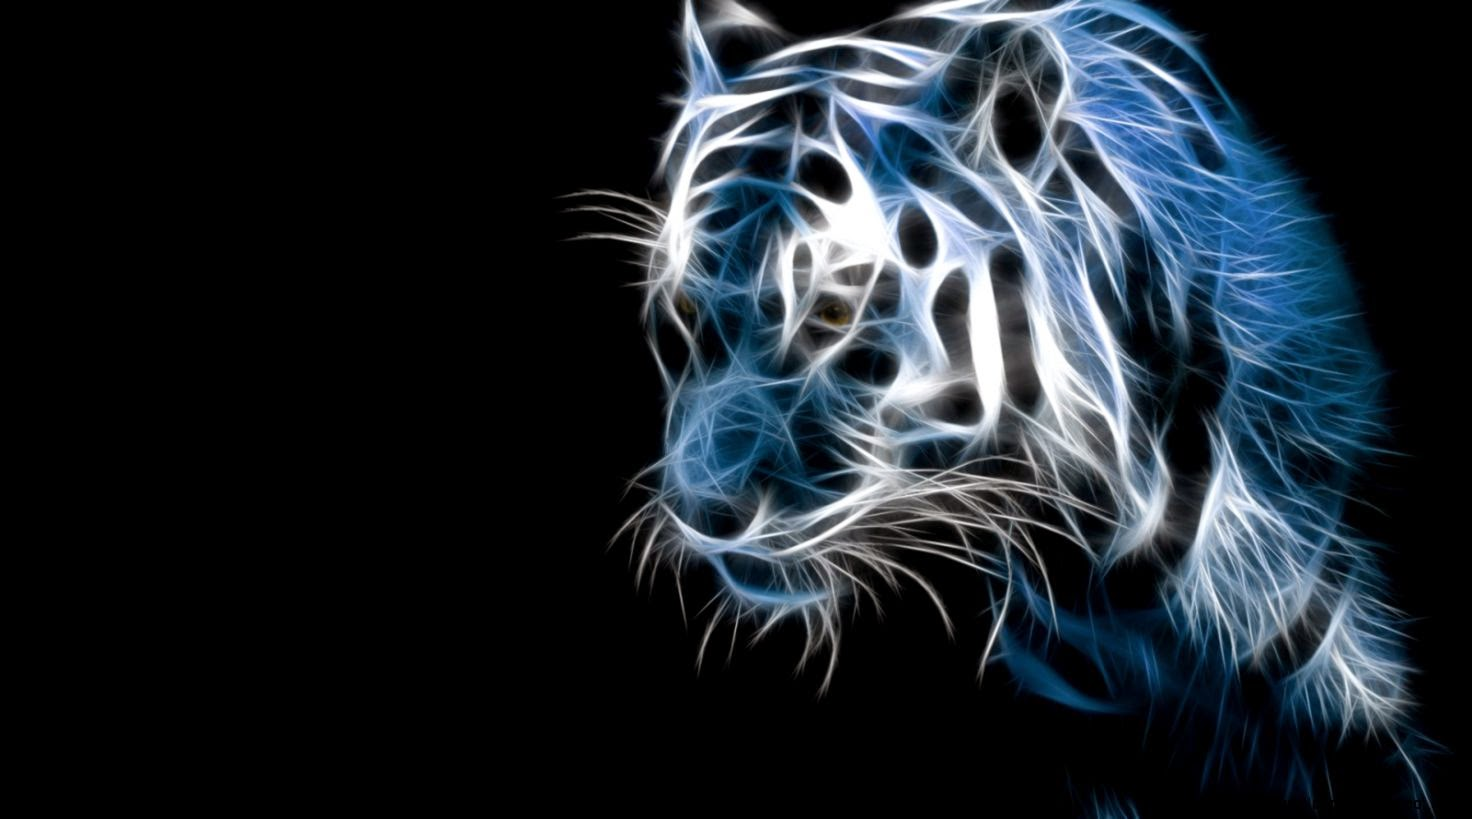 Cool Desktop Backgrounds That Move | Amazing Wallpapers